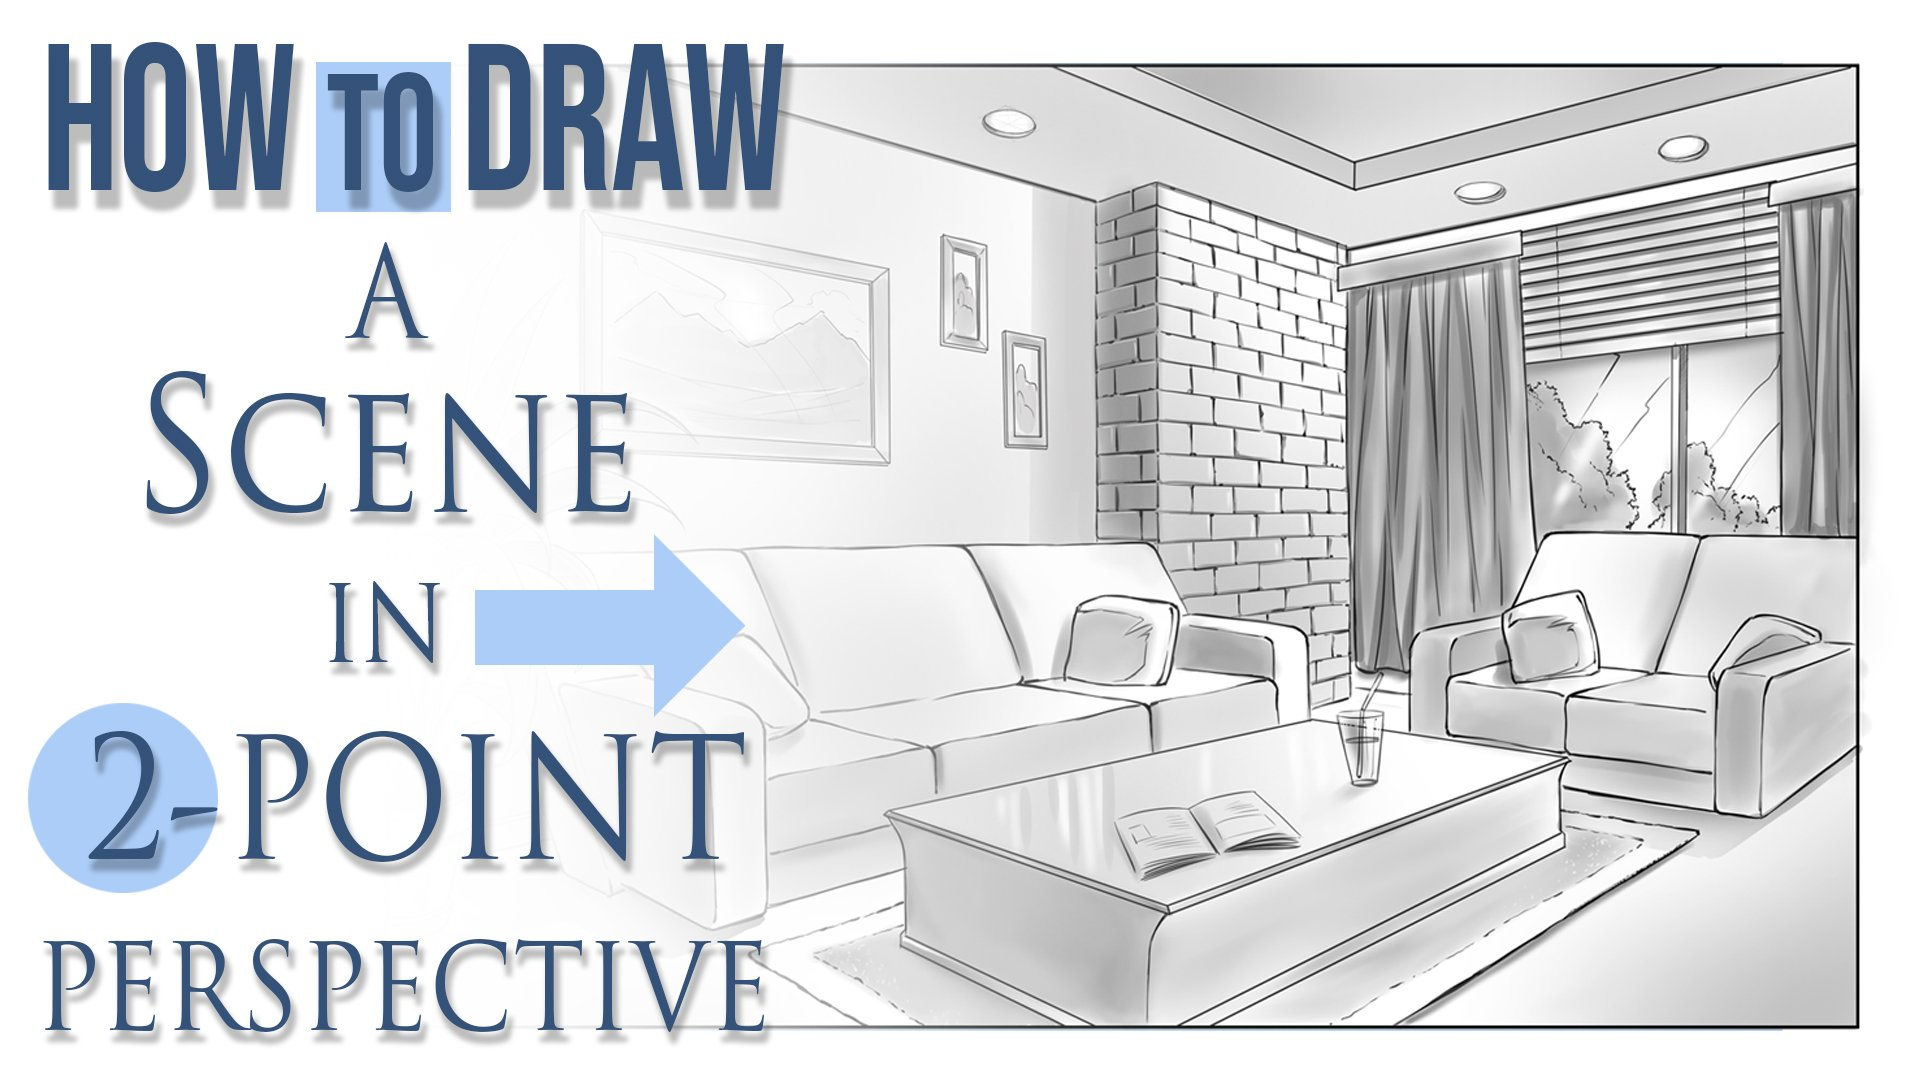 Drawing A Scene In 2 Point Perspective Robert Marzullo Skillshare